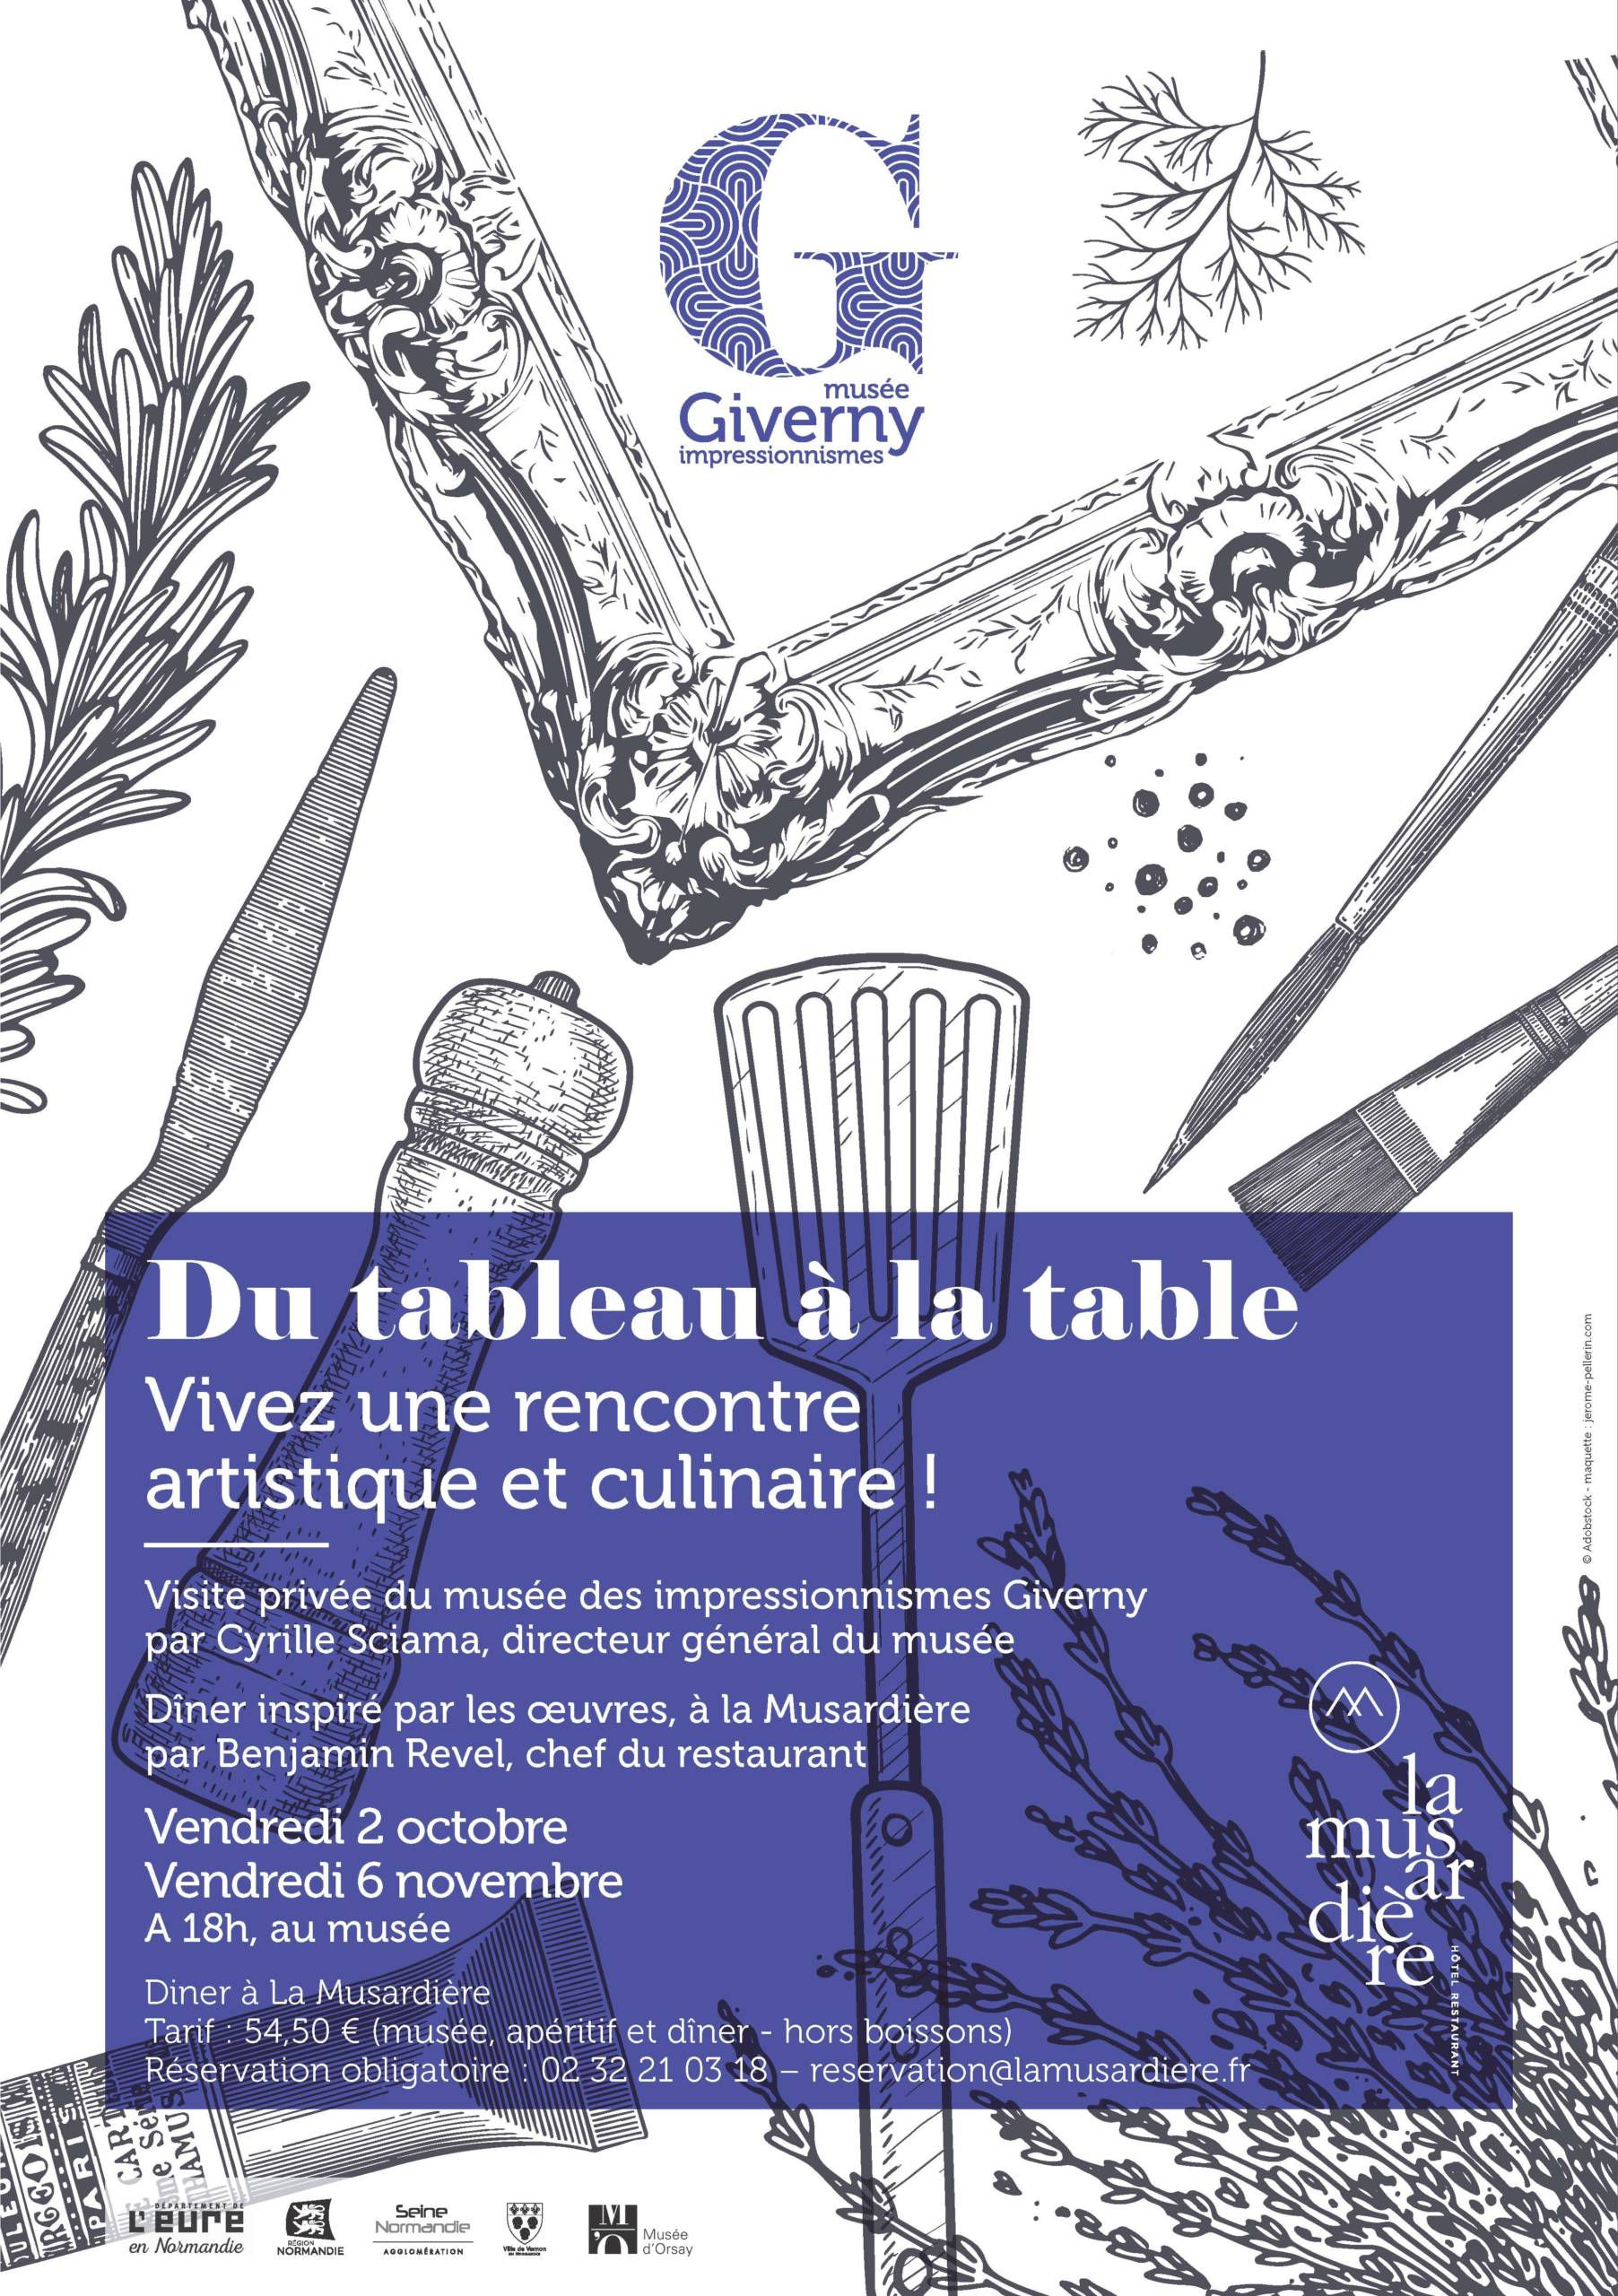 du tableau à la table